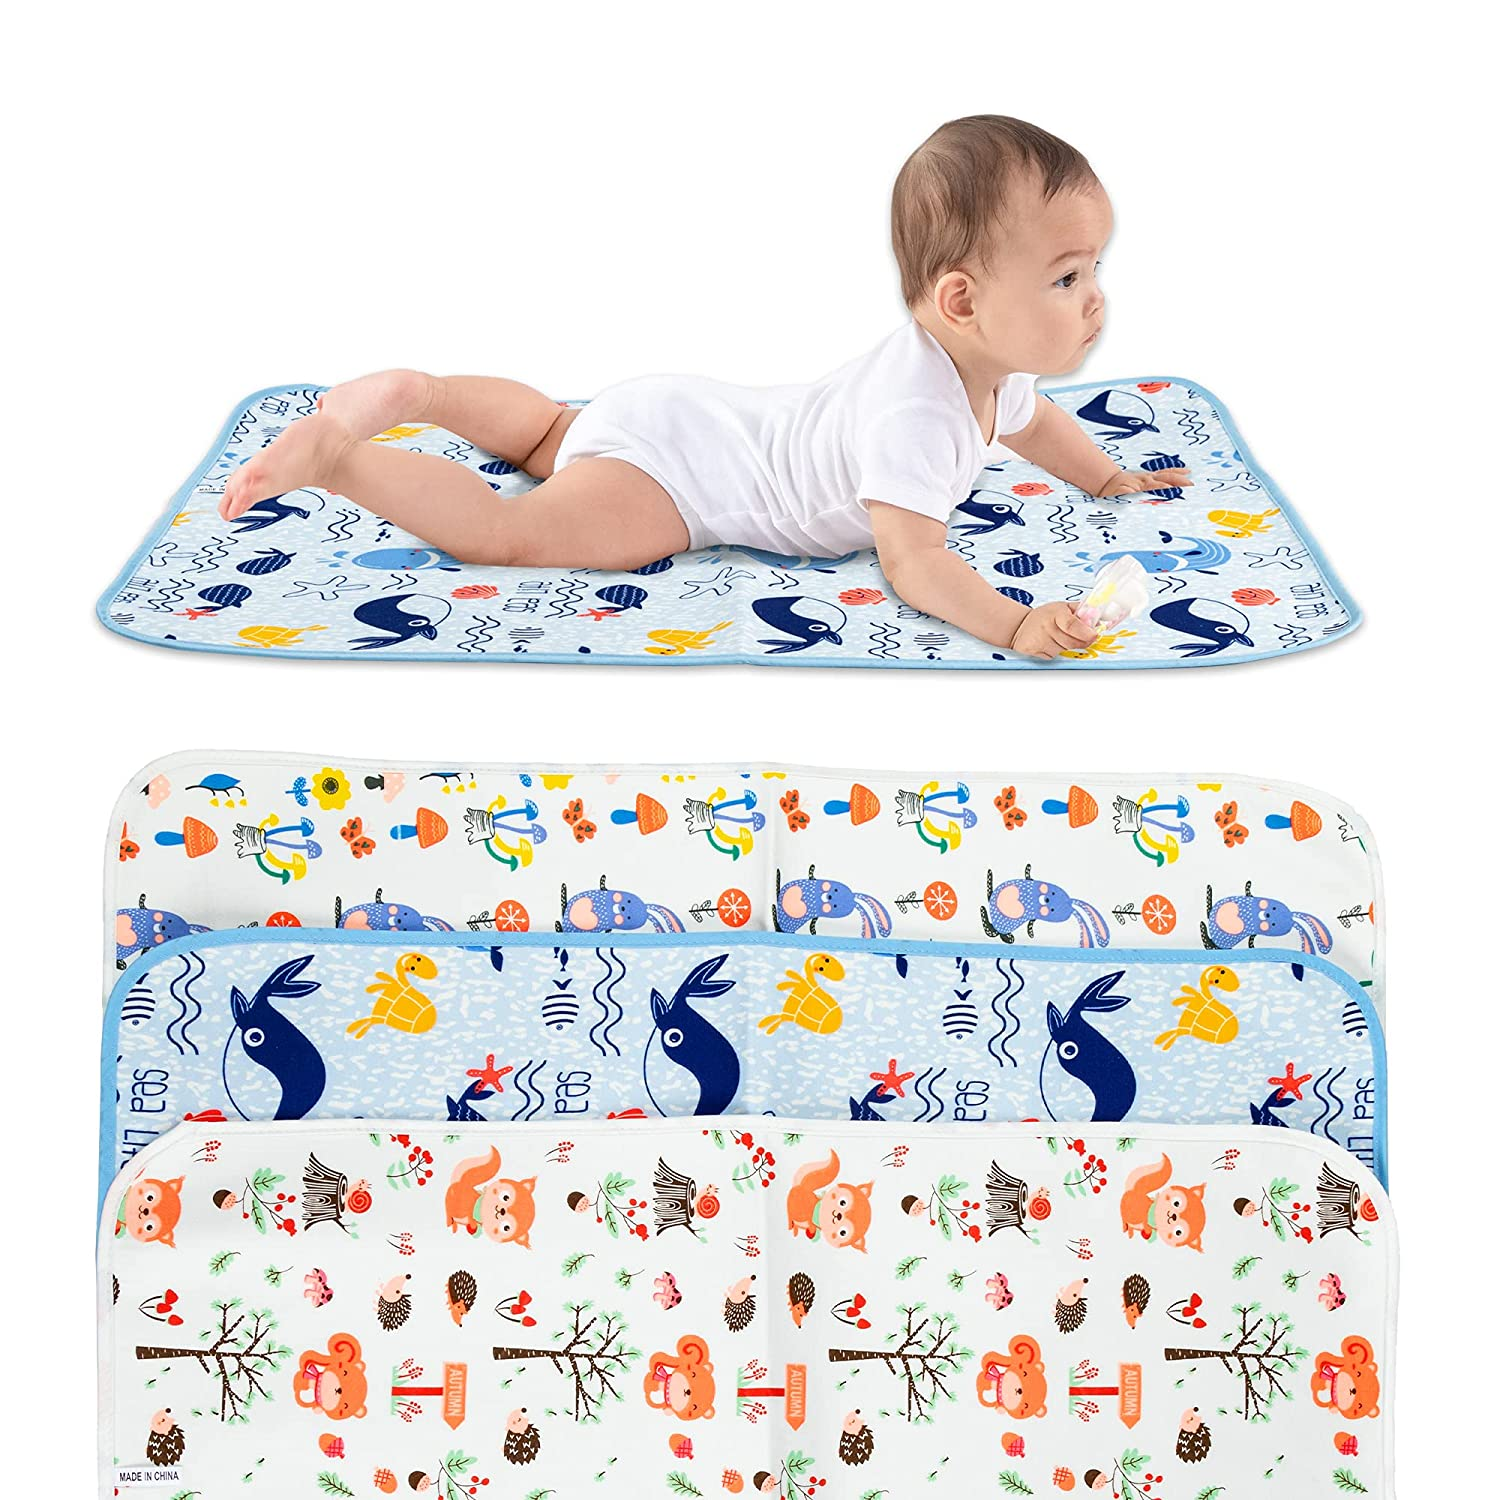 ODDA Portable Diaper Change Pad Special Campaign -19.7 Popular product 27.6 Waterproof X inches F